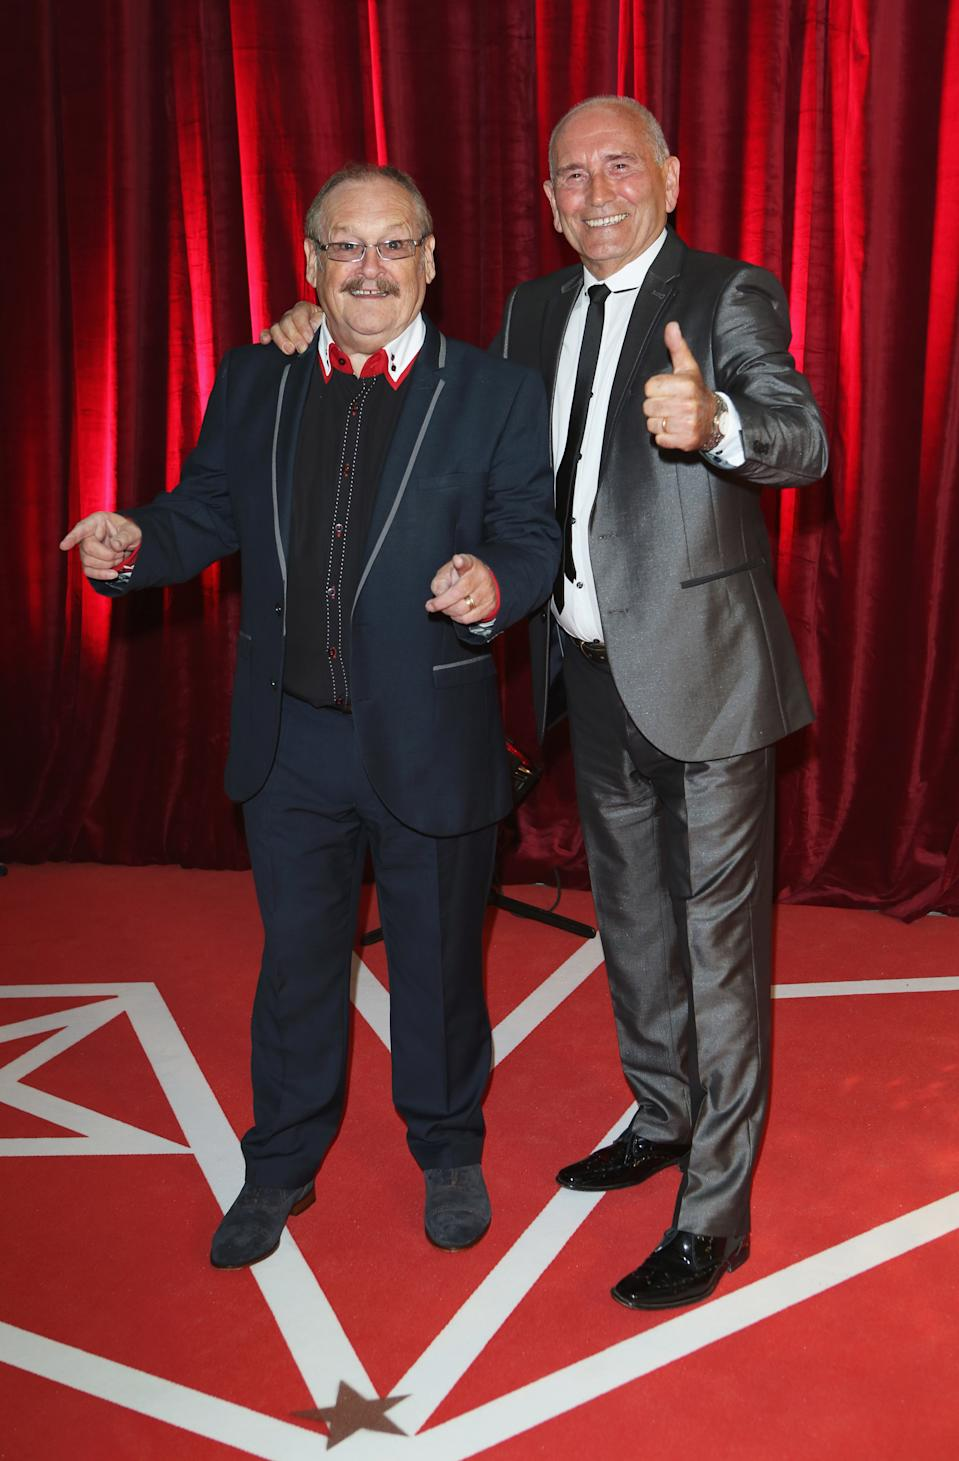 Bobby Ball and Tommy Cannon at the British Soap Awards at Media City on May 18, 2013 in Manchester, England. (Photo by Tim P. Whitby/Getty Images)